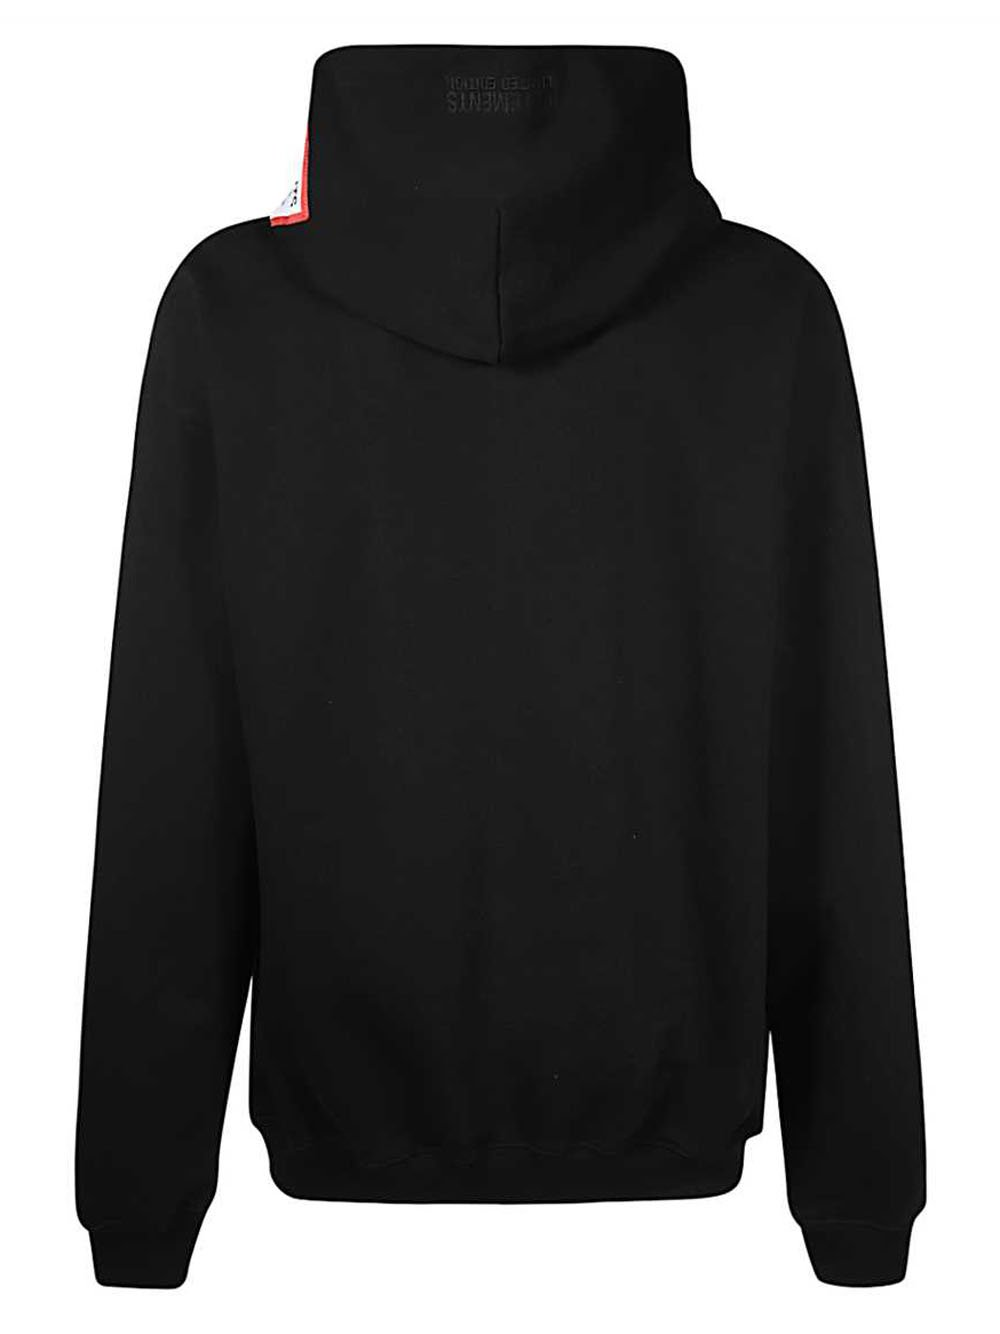 VETEMENTS Logo Patch Hoodie Black - Maison De Fashion